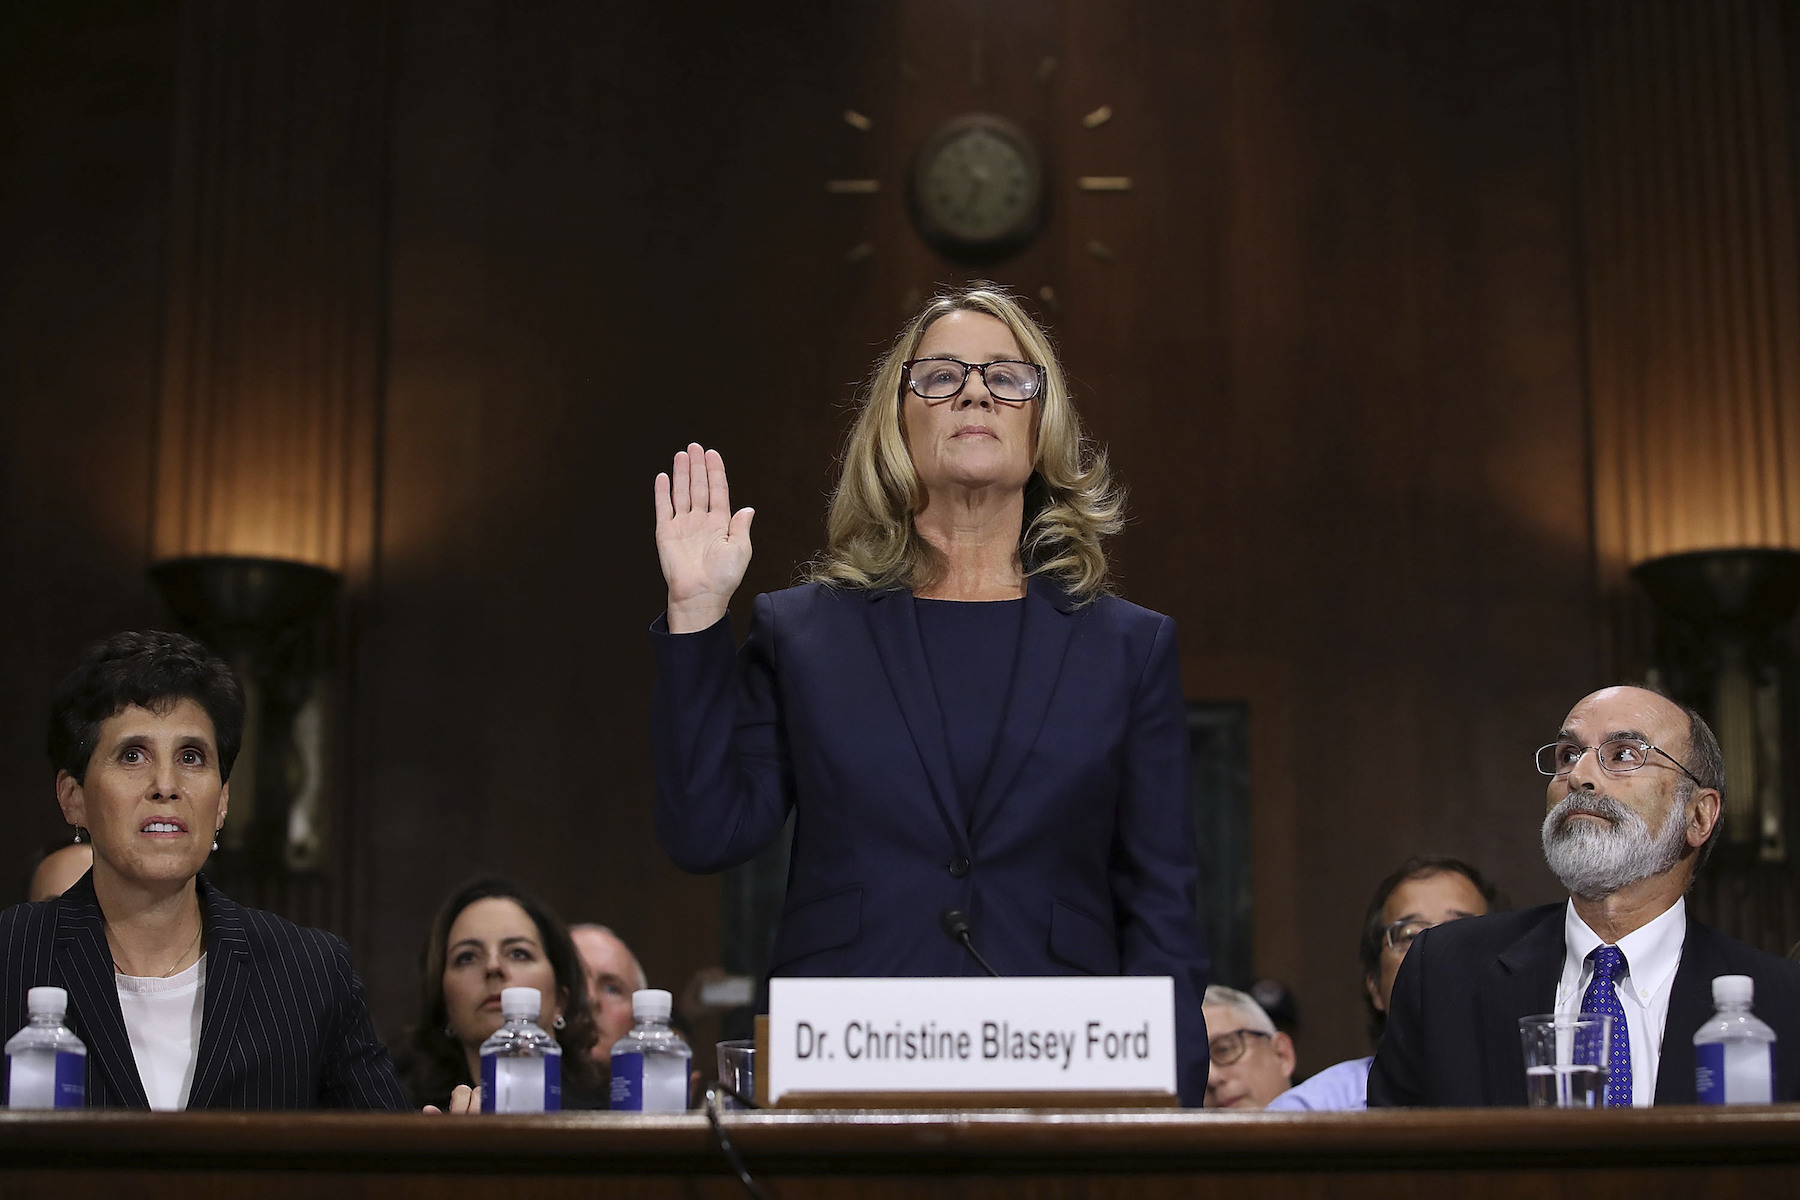 "<div class=""meta image-caption""><div class=""origin-logo origin-image ap""><span>AP</span></div><span class=""caption-text"">Christine Blasey Ford is sworn in before the Senate Judiciary Committee, Thursday, Sept. 27, 2018 in Washington. Her attorneys Debra Katz and Michael Bromwich watch. (Win McNamee/Pool Image via AP)</span></div>"